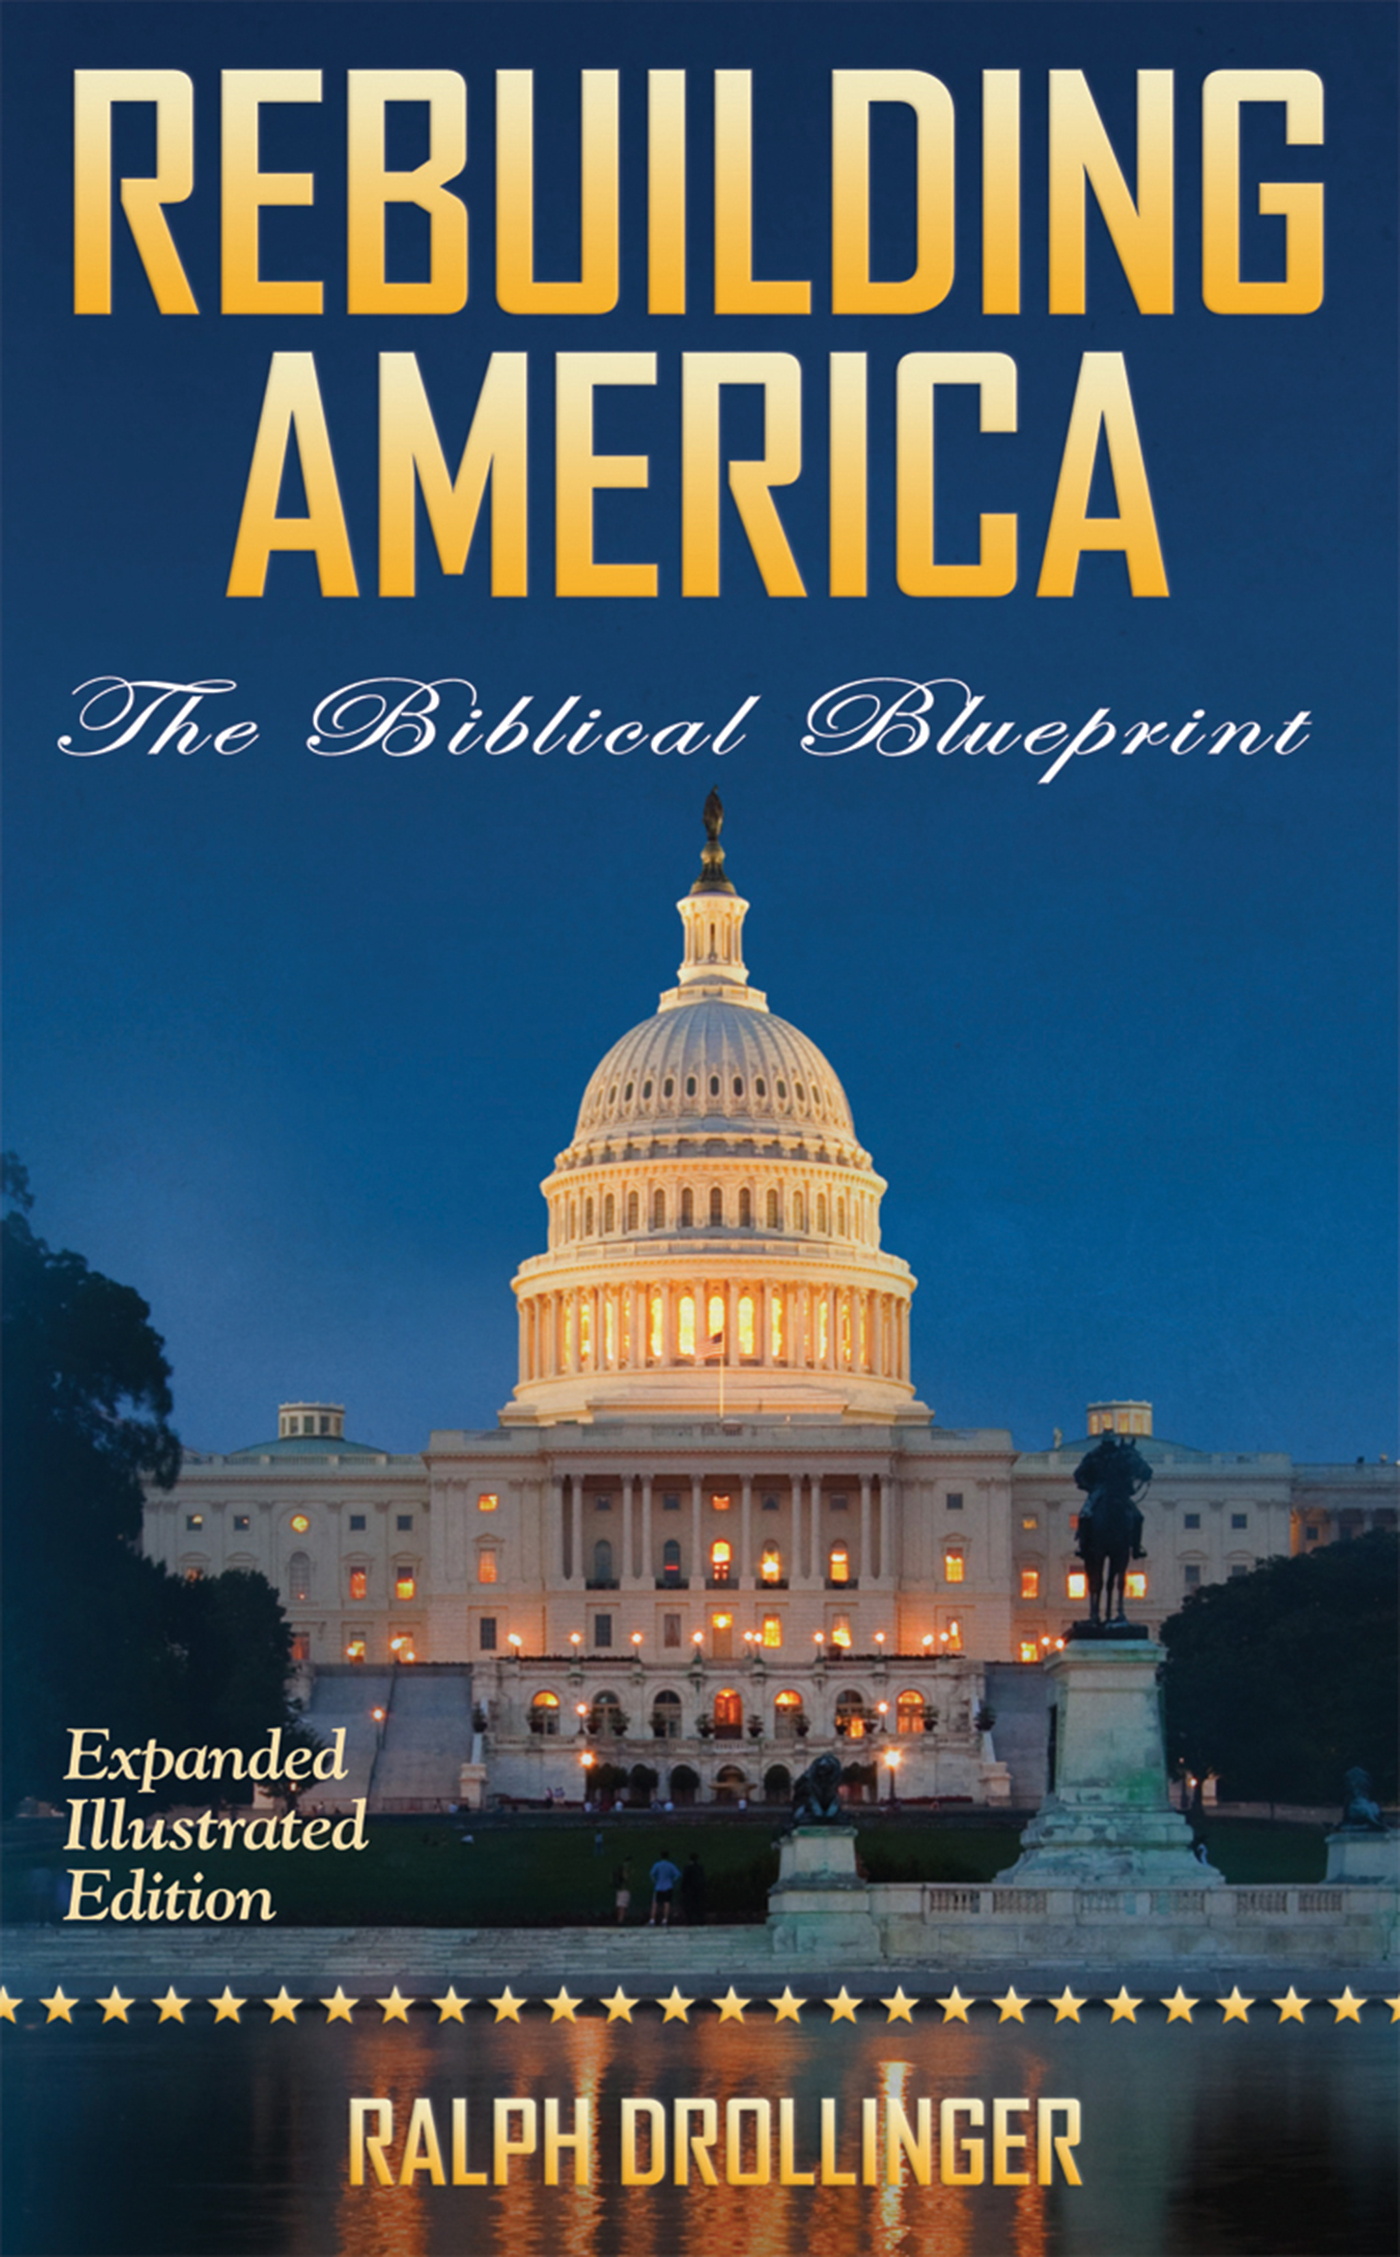 Smashwords rebuilding america the biblical blueprint a book rebuilding america the biblical blueprint malvernweather Image collections